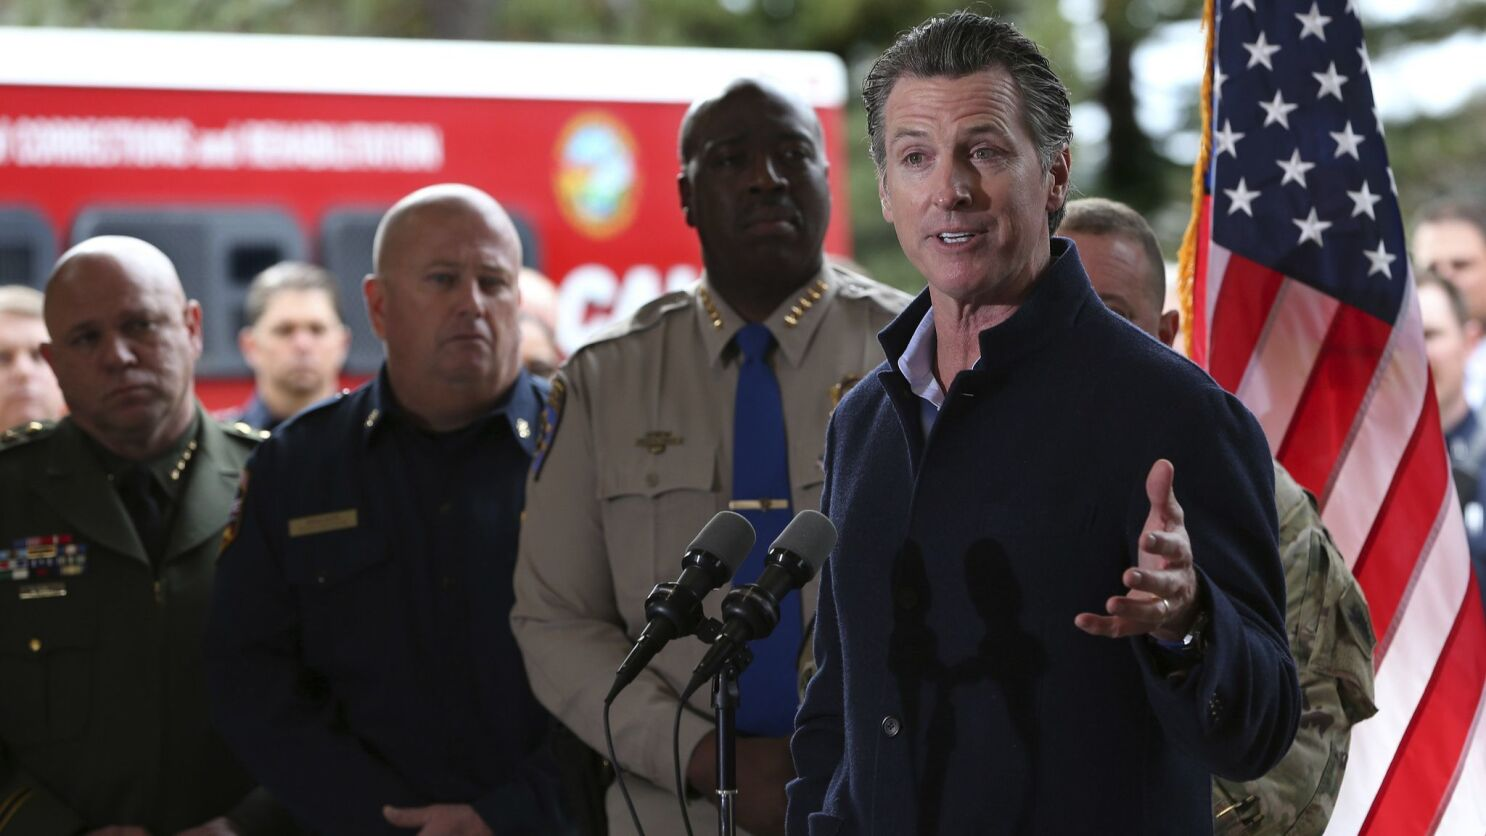 With new California wildfire law, Newsom didn't let perfect be the enemy of good - Los Angeles Times